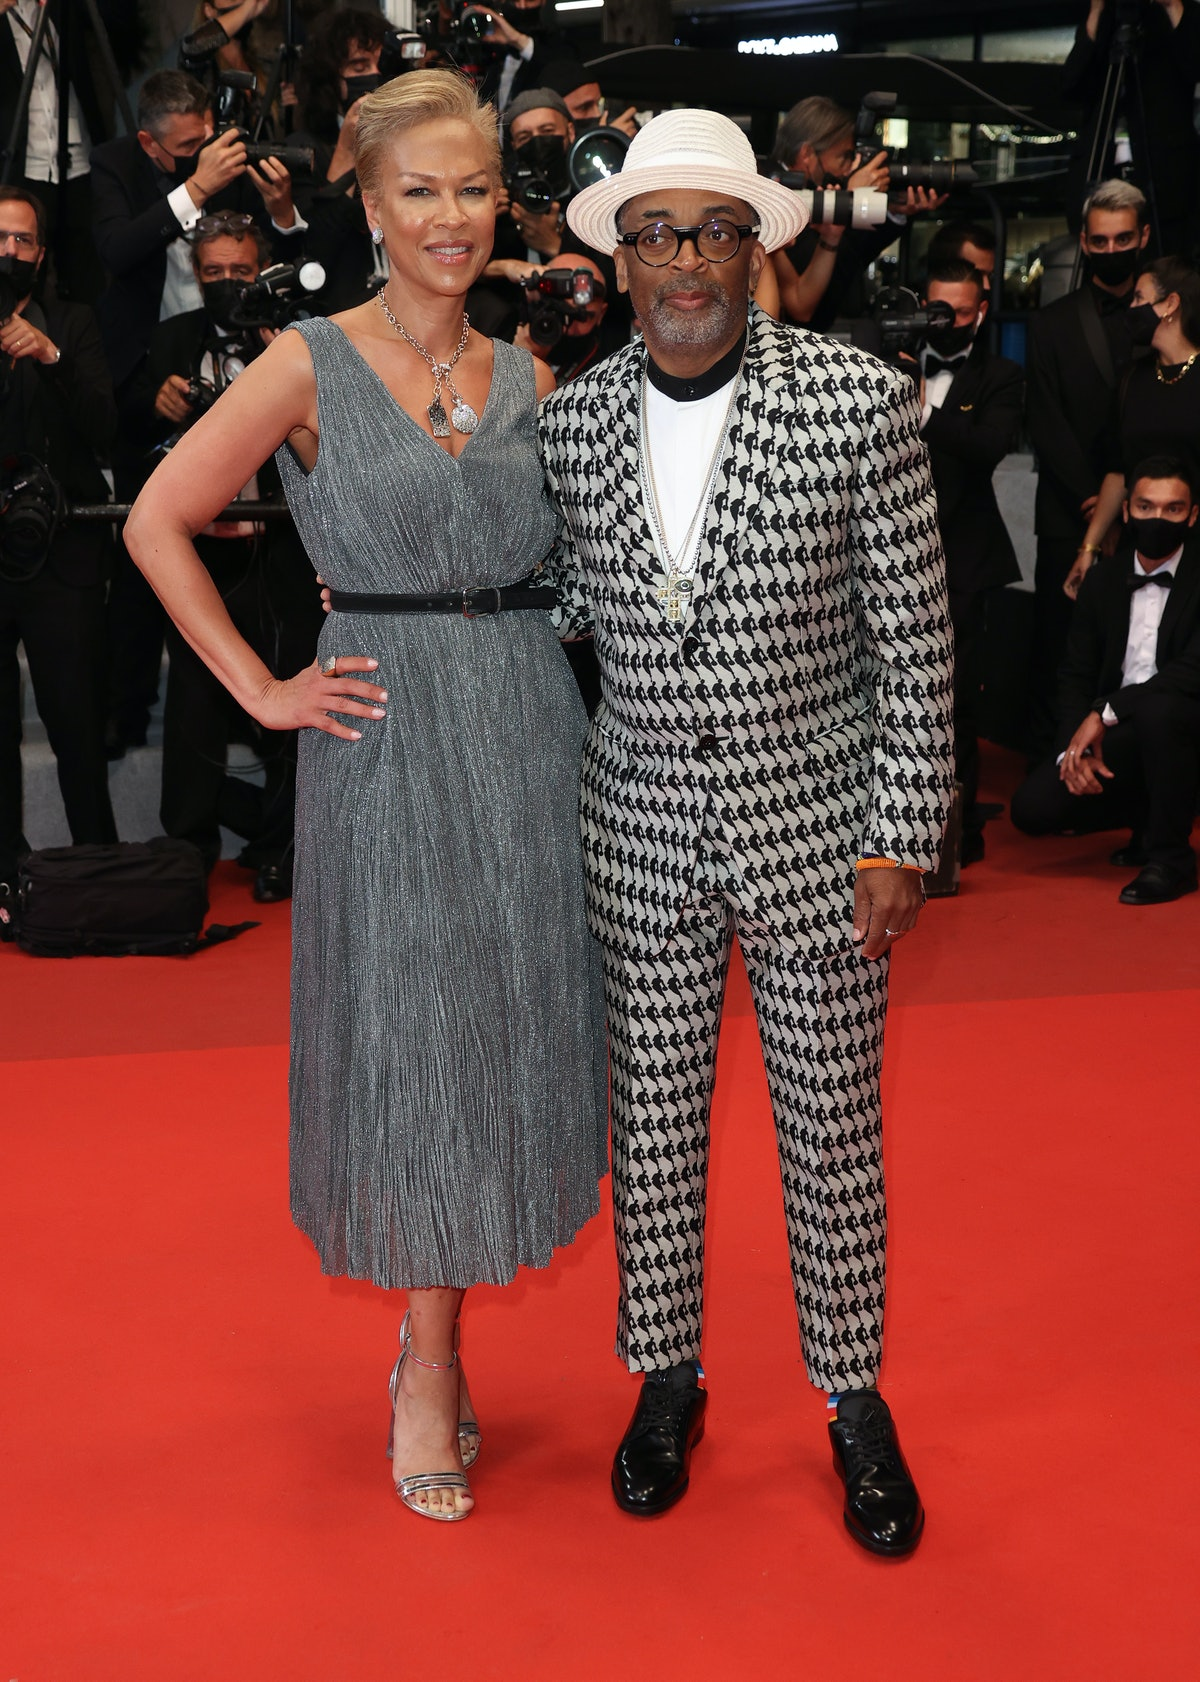 """CANNES, FRANCE - JULY 10: Spike Lee and Tonya Lewis Lee attend the """"Flag Day"""" screening during the 74th annual Cannes Film Festival on July 10, 2021 in Cannes, France. (Photo by Mike Marsland/WireImage)"""